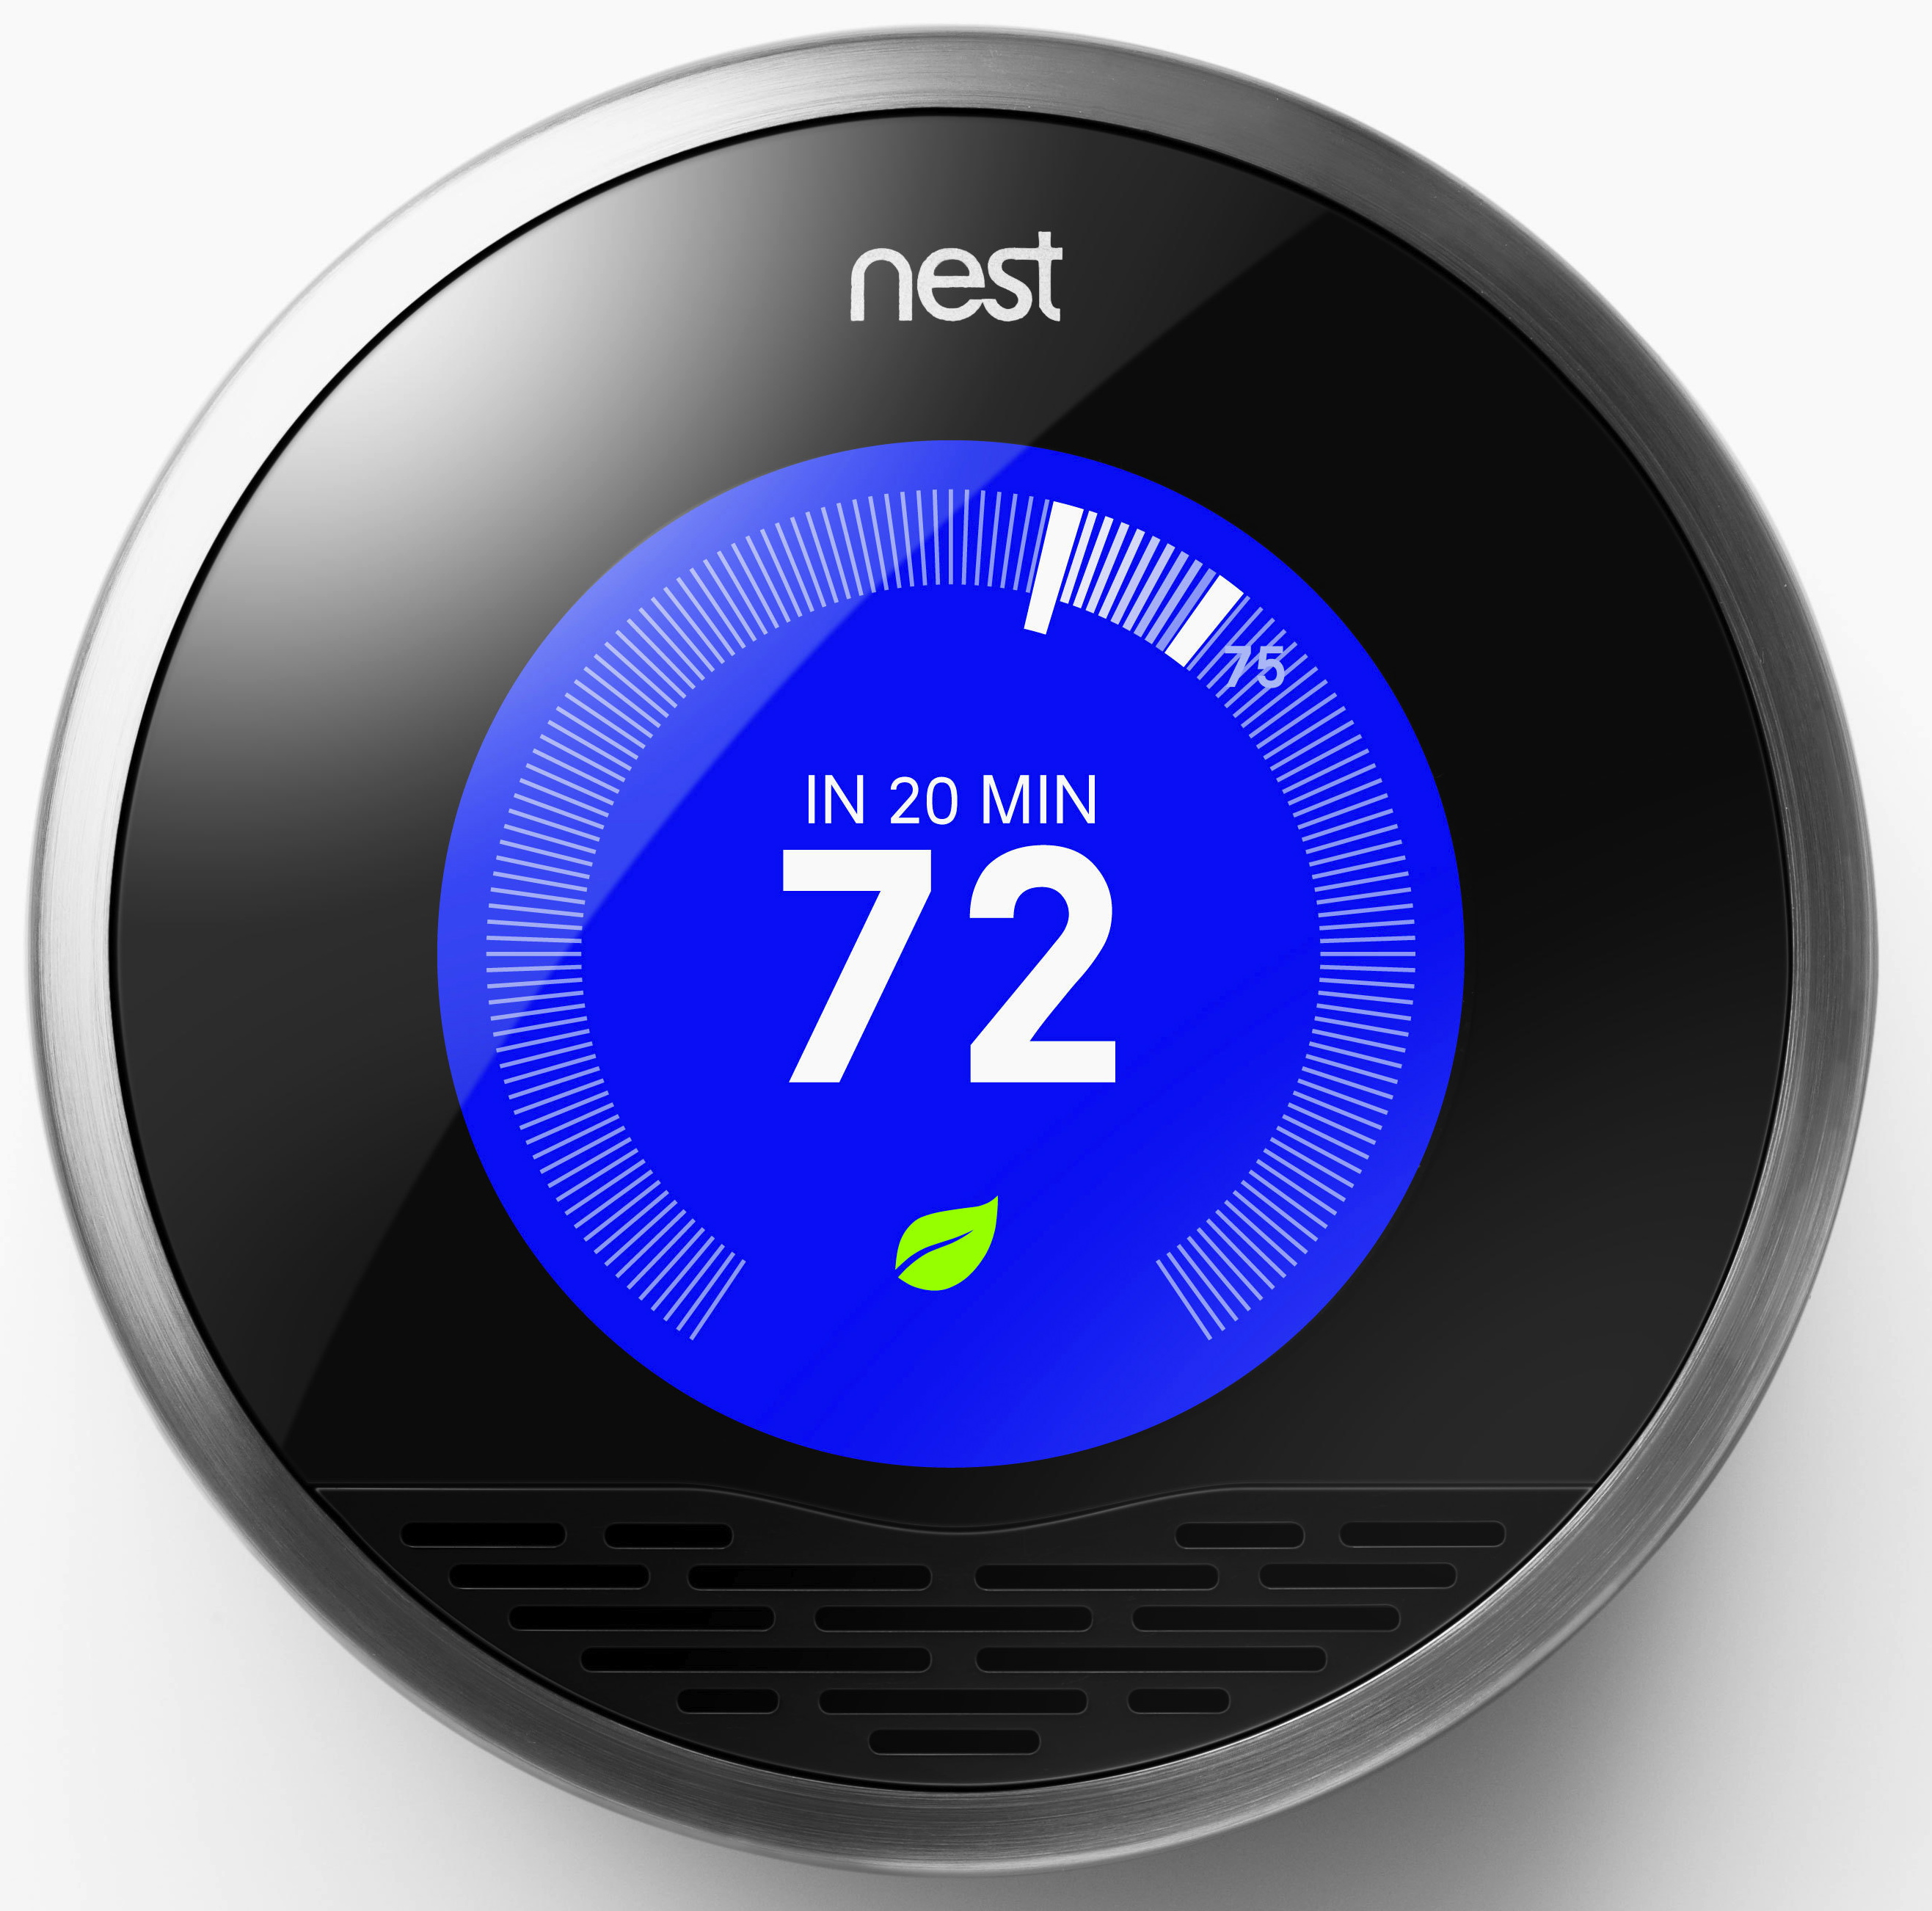 The Week in Technology: Google buys Nest, the Net isn't Neutral, and Yahoo's #2 is done